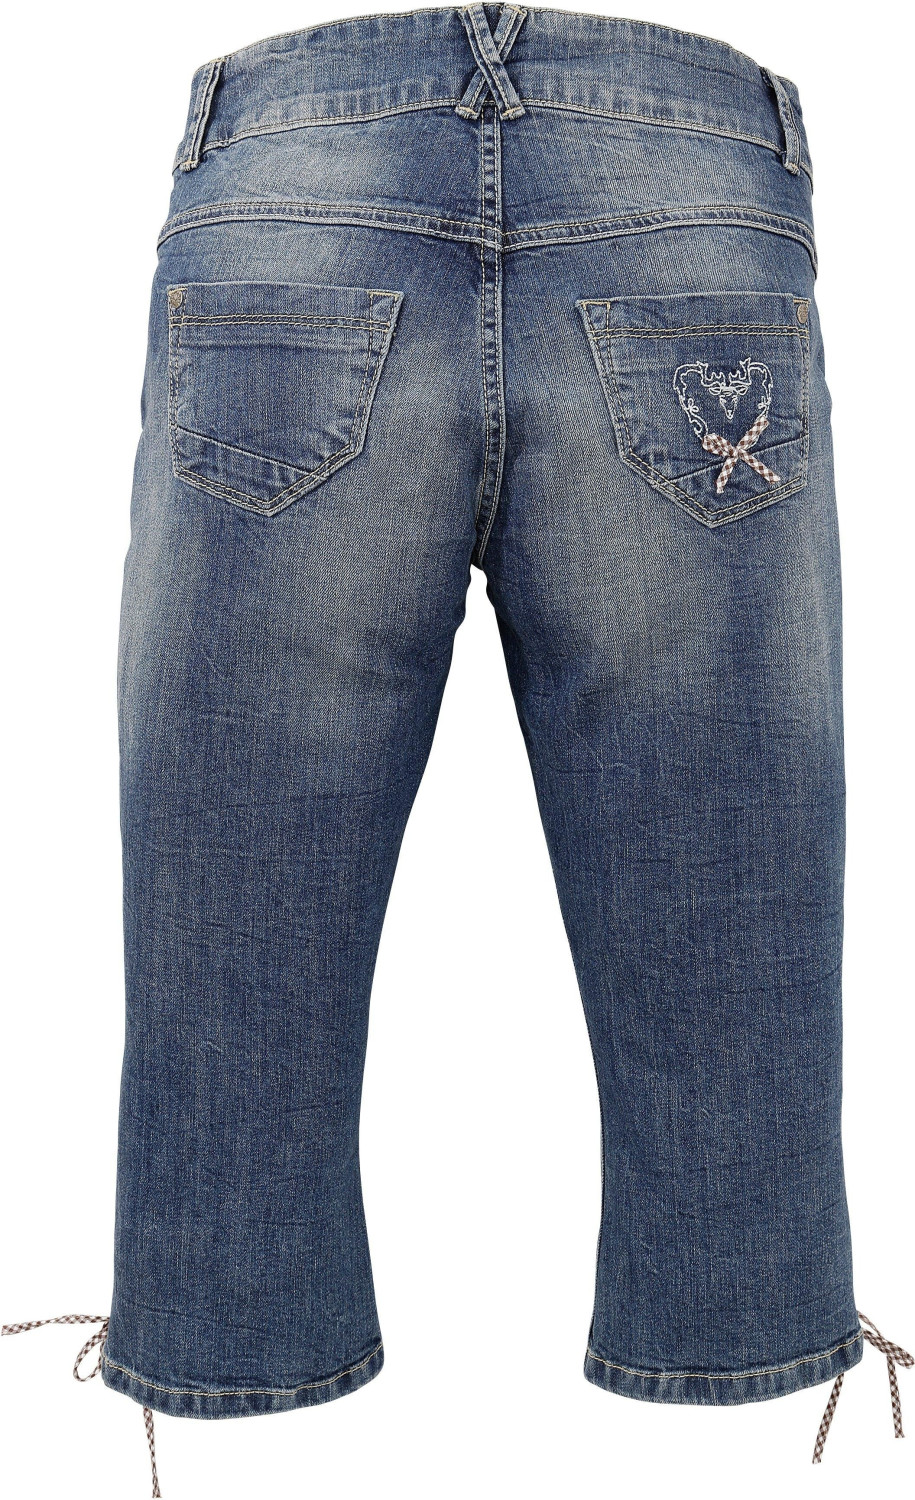 Country Line Trachtenjeans (90009986)